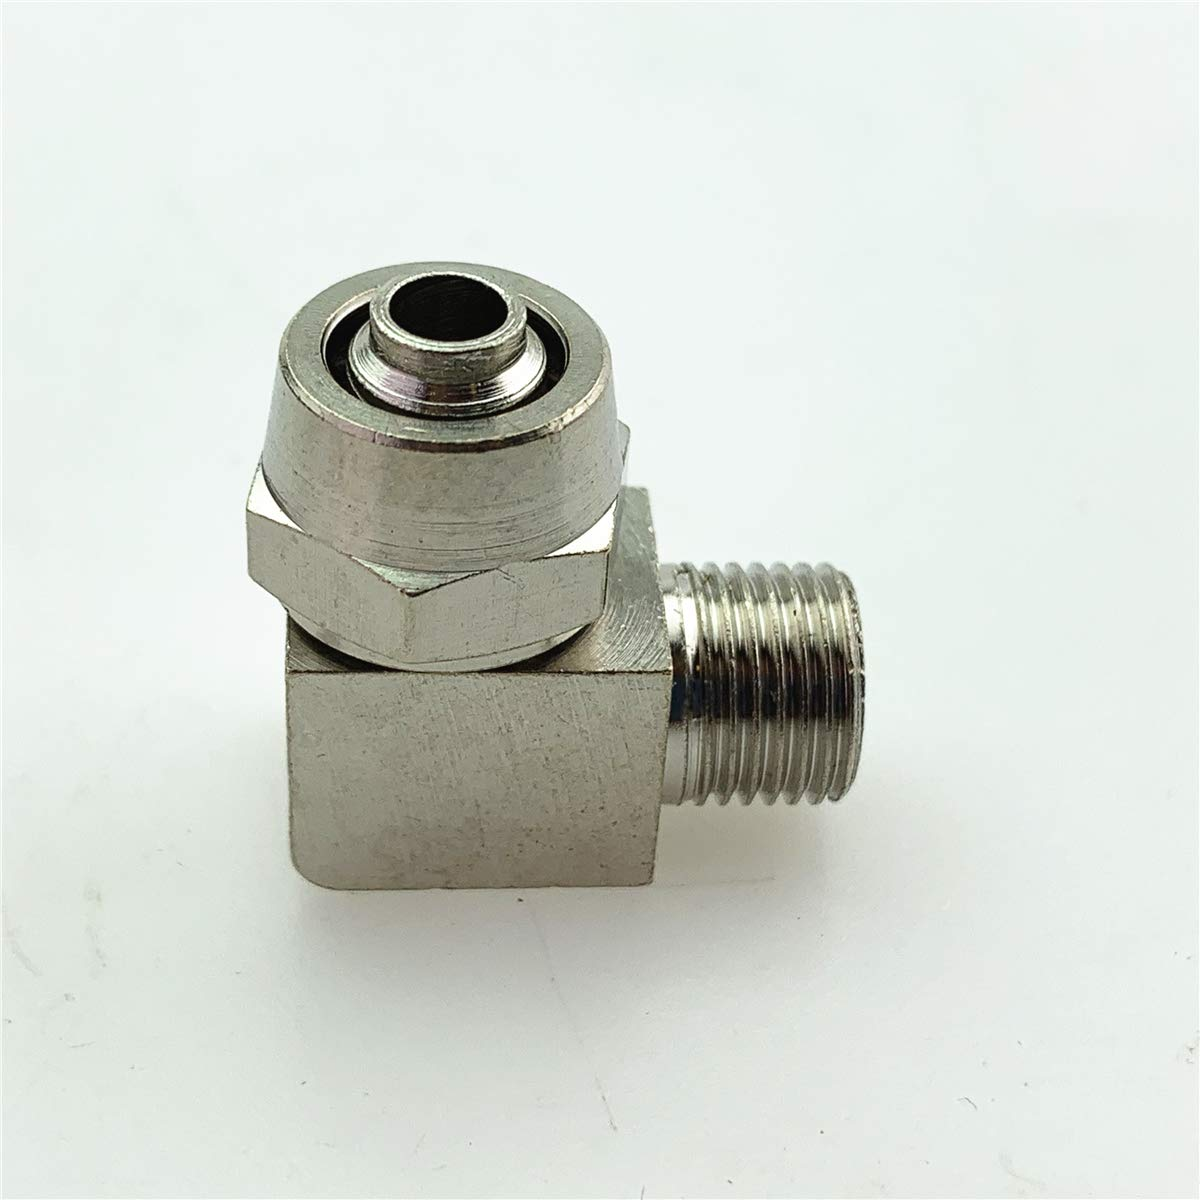 Pneumatic Air Pipe Quick Pl8 Mm-02 Joint Arlington Mall Degree 2021 autumn and winter new Screw R 90